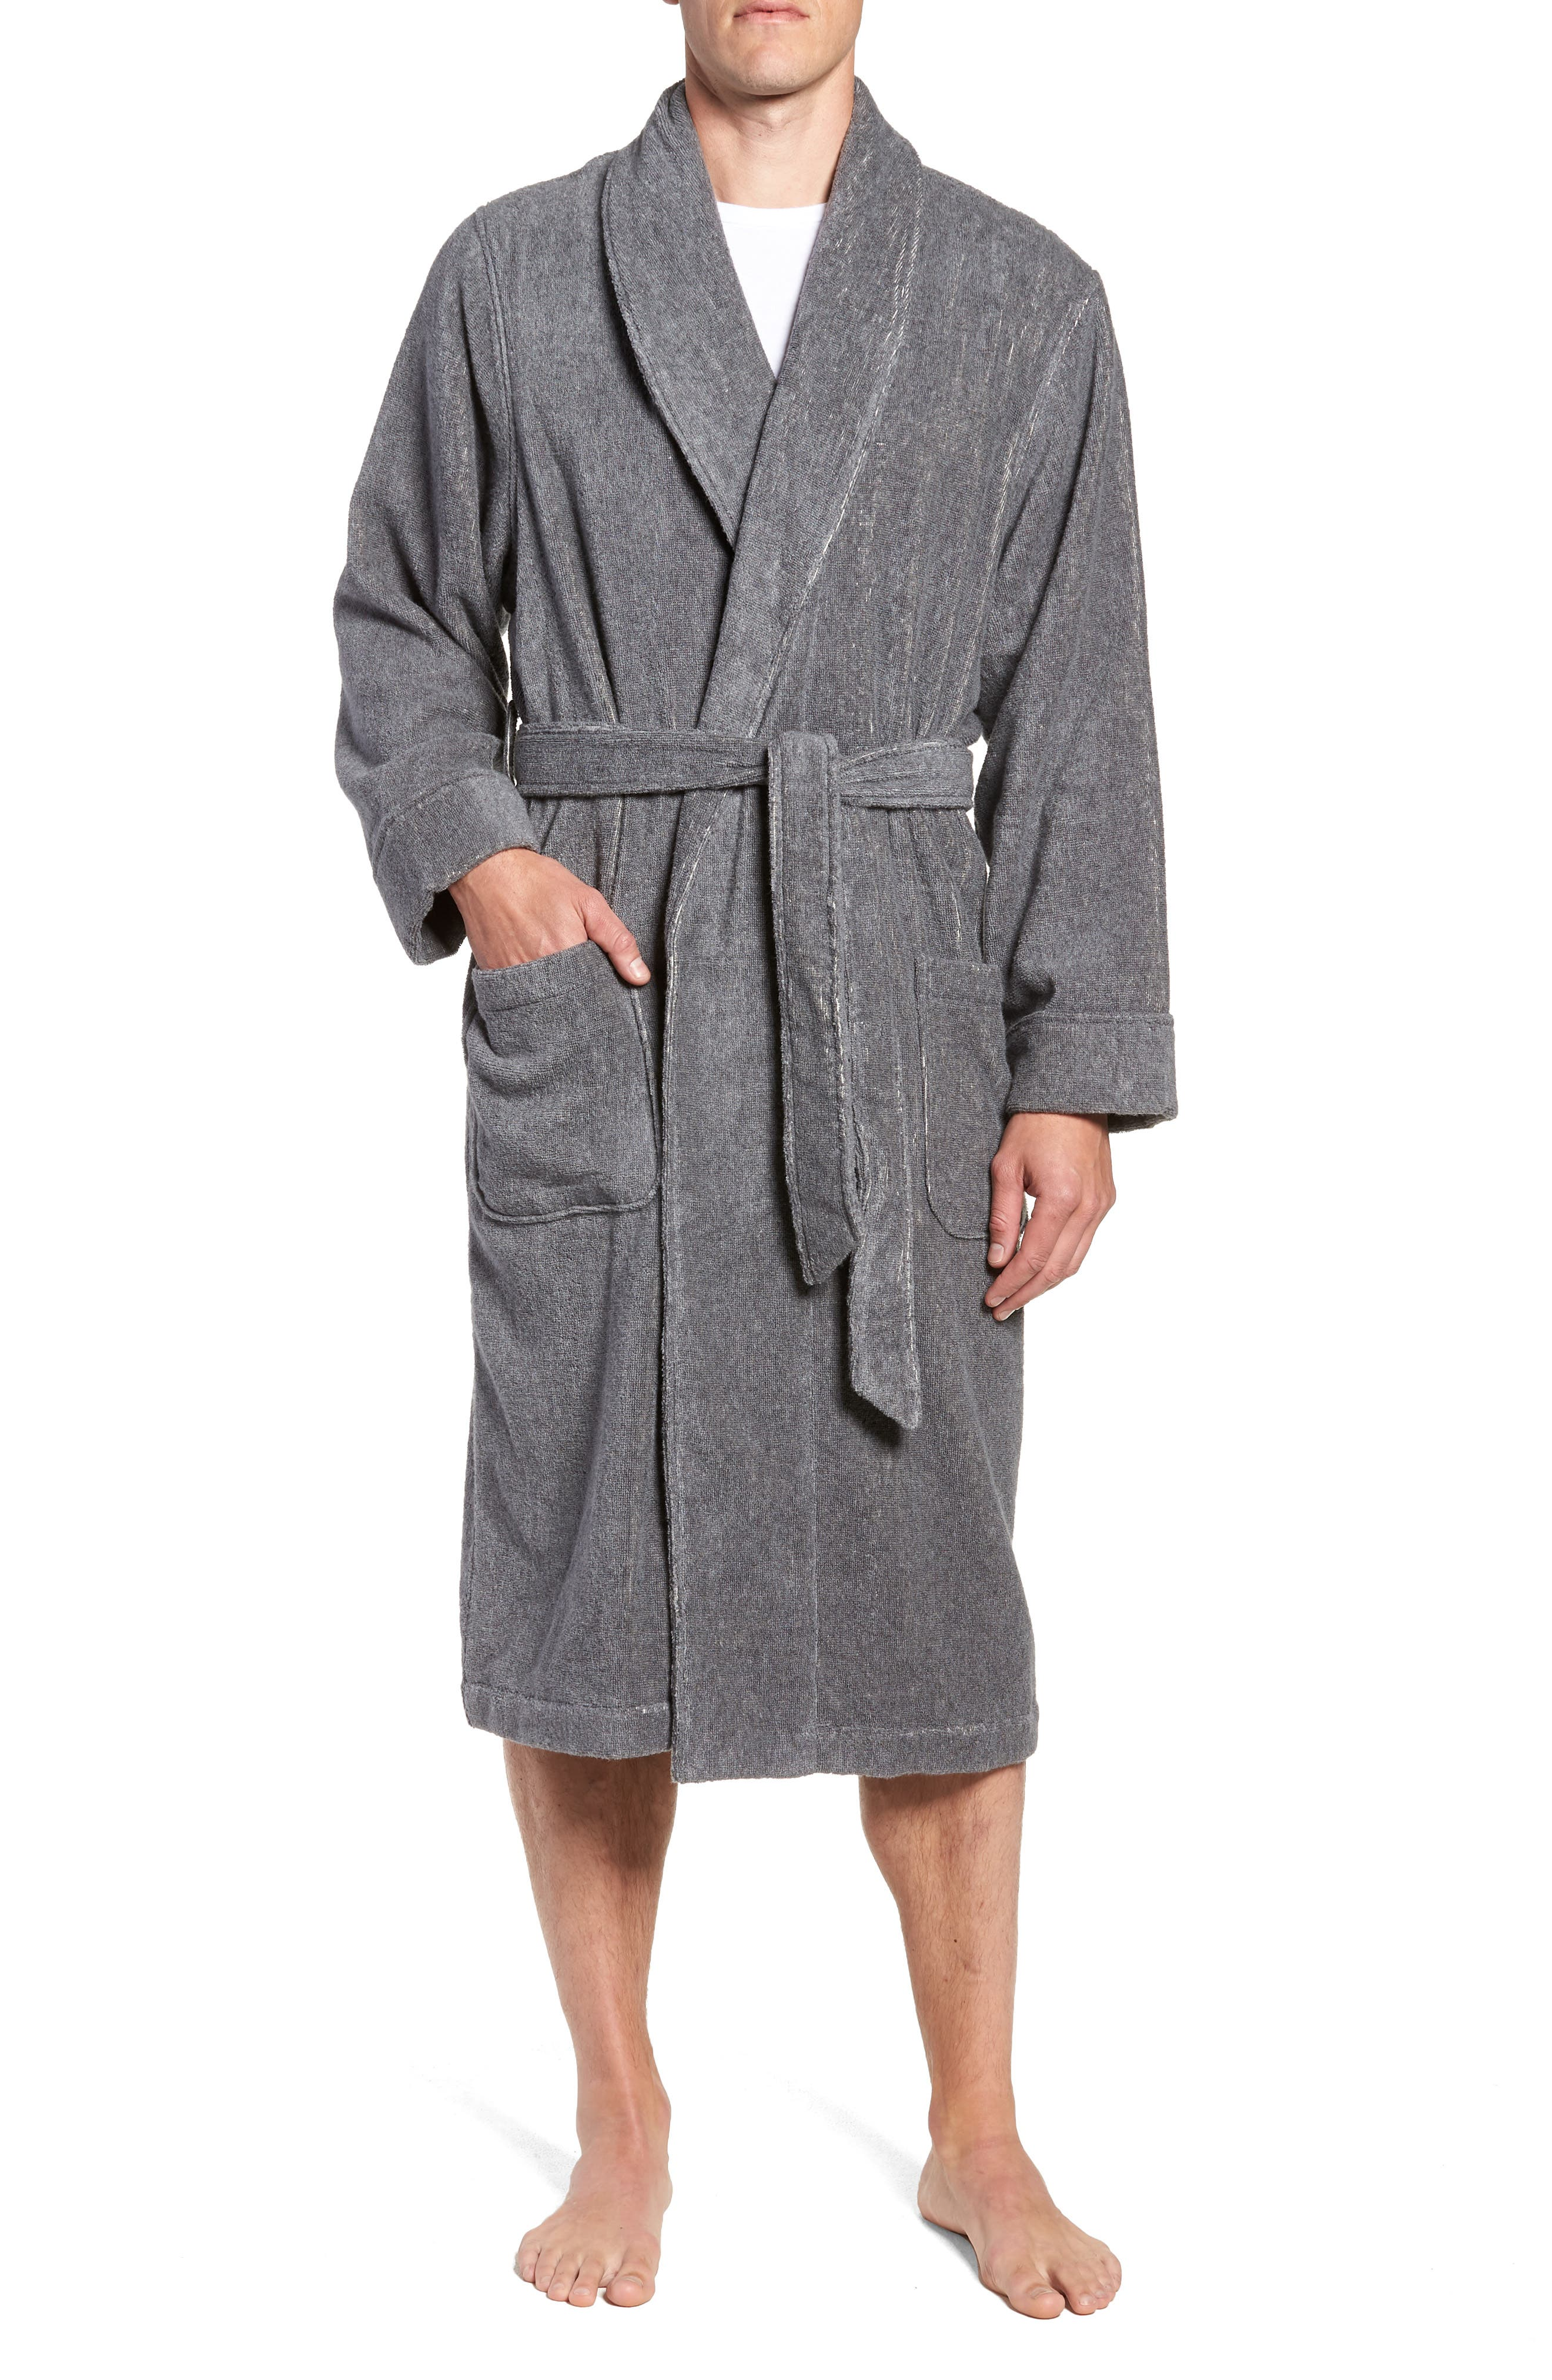 NORDSTROM MEN'S SHOP Hydro Cotton Terry Robe, Main, color, 022